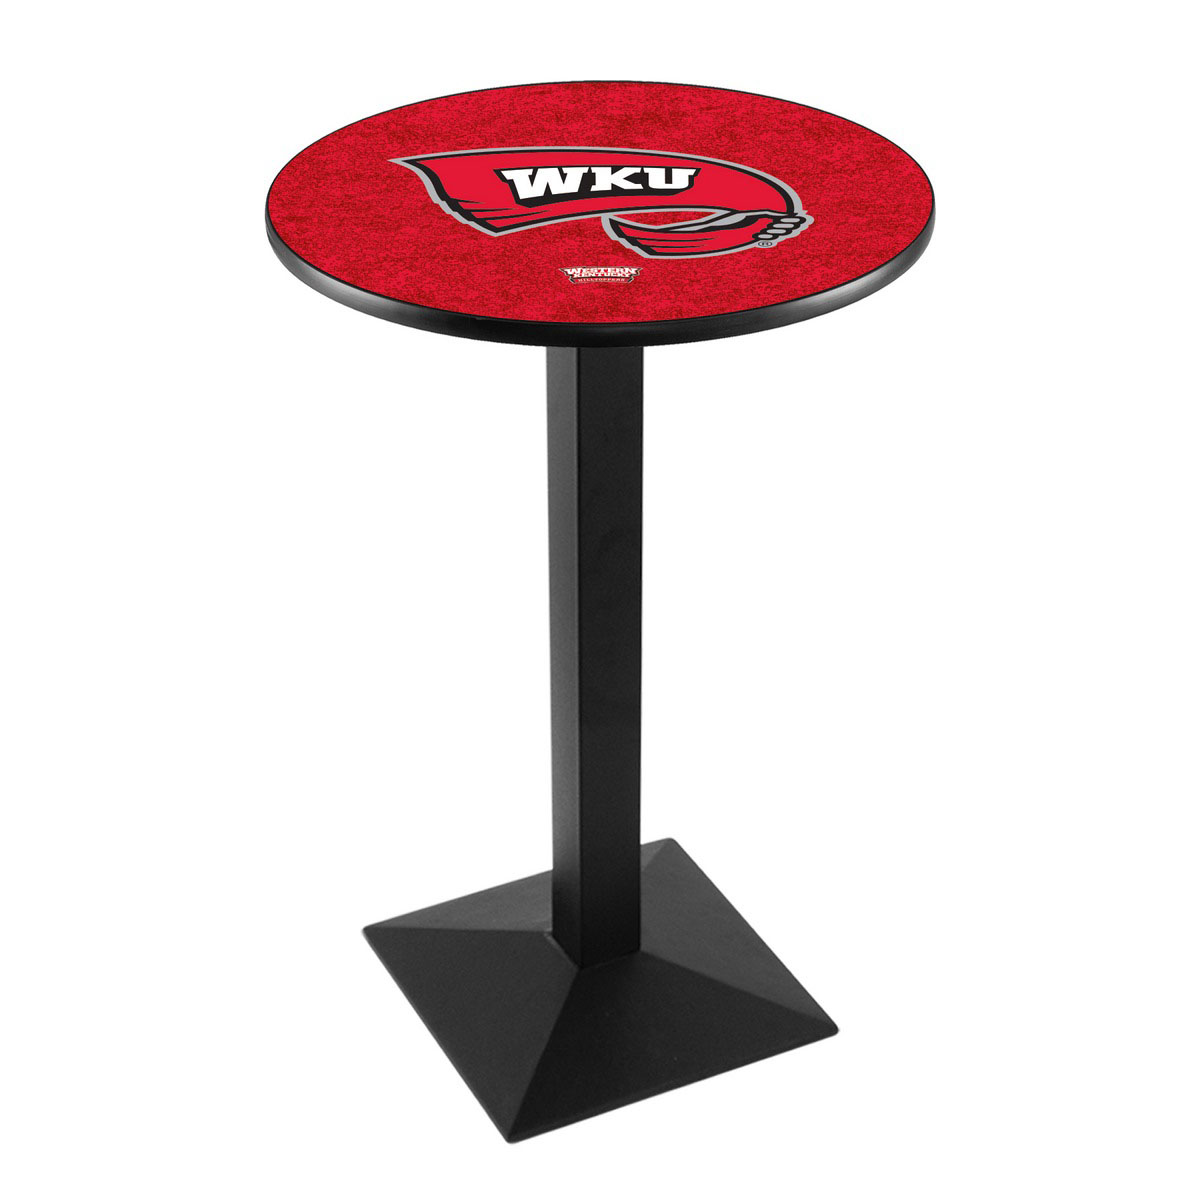 View Western Kentucky University Logo Pub Bar Table Square Stand Product Photo